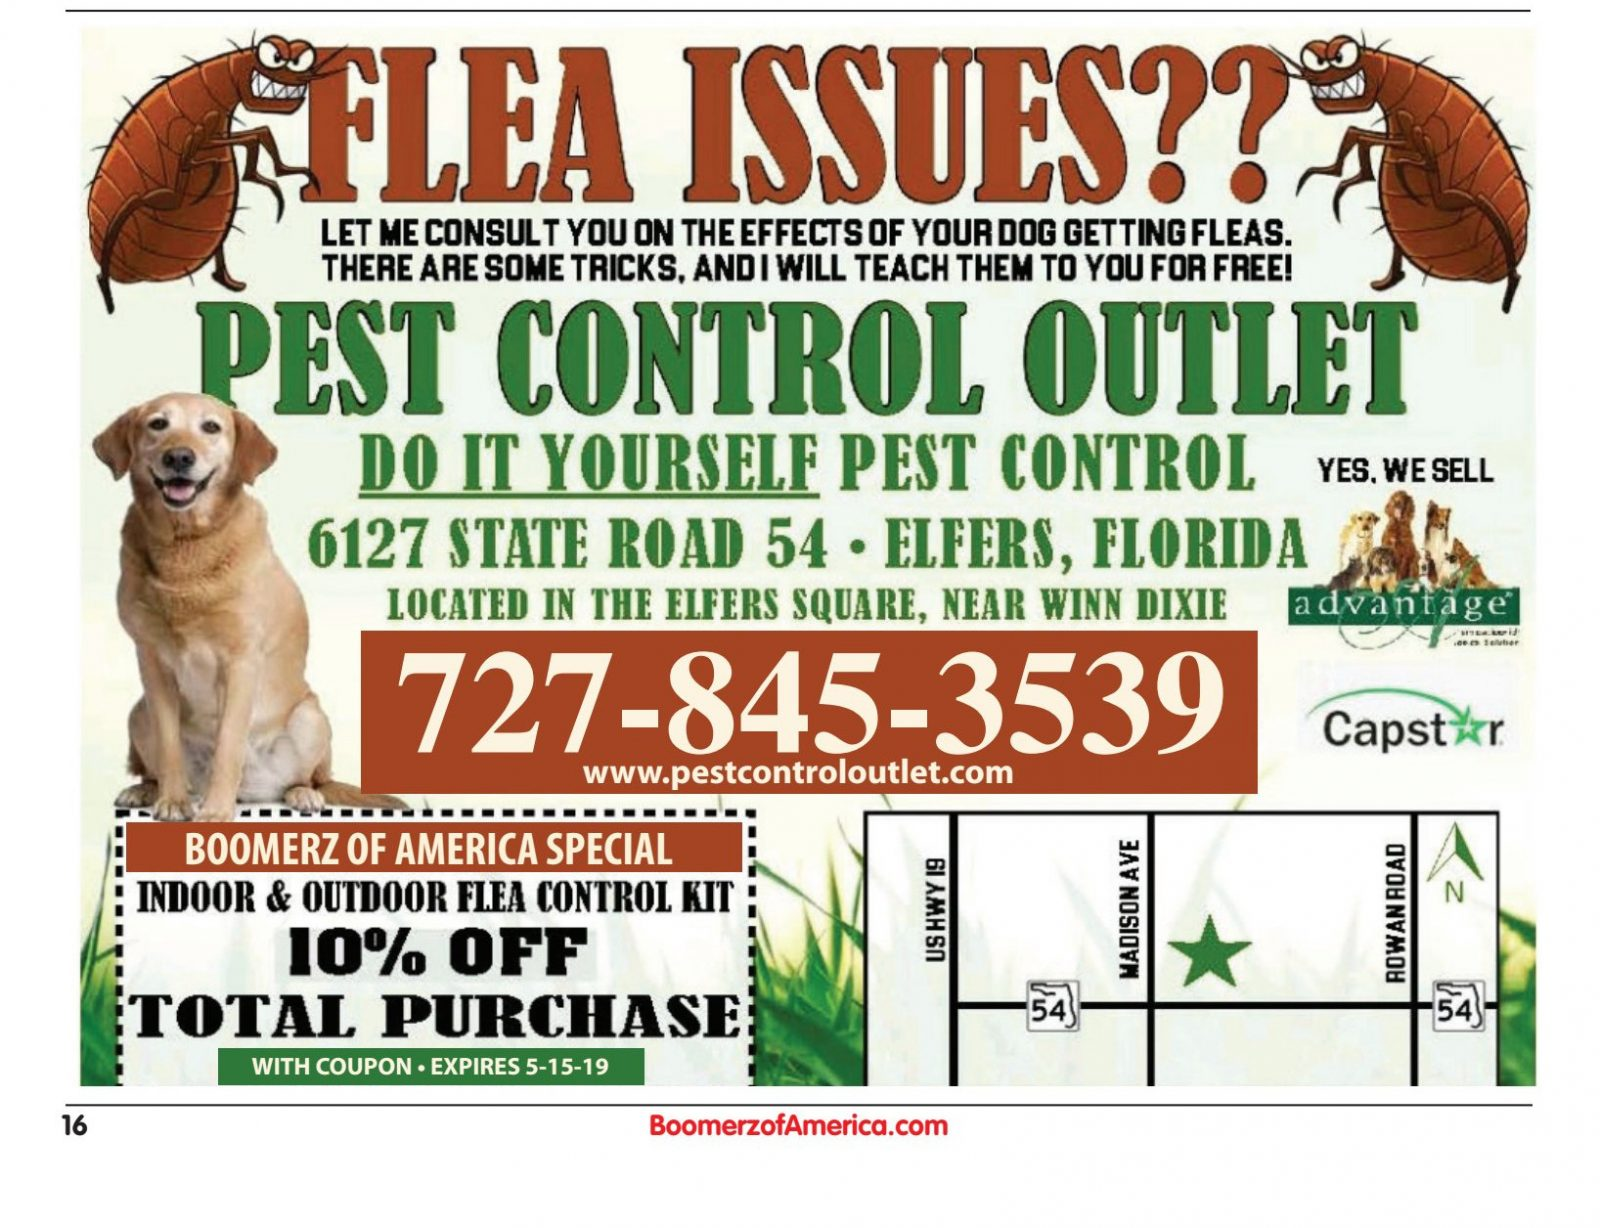 Pest control outlet